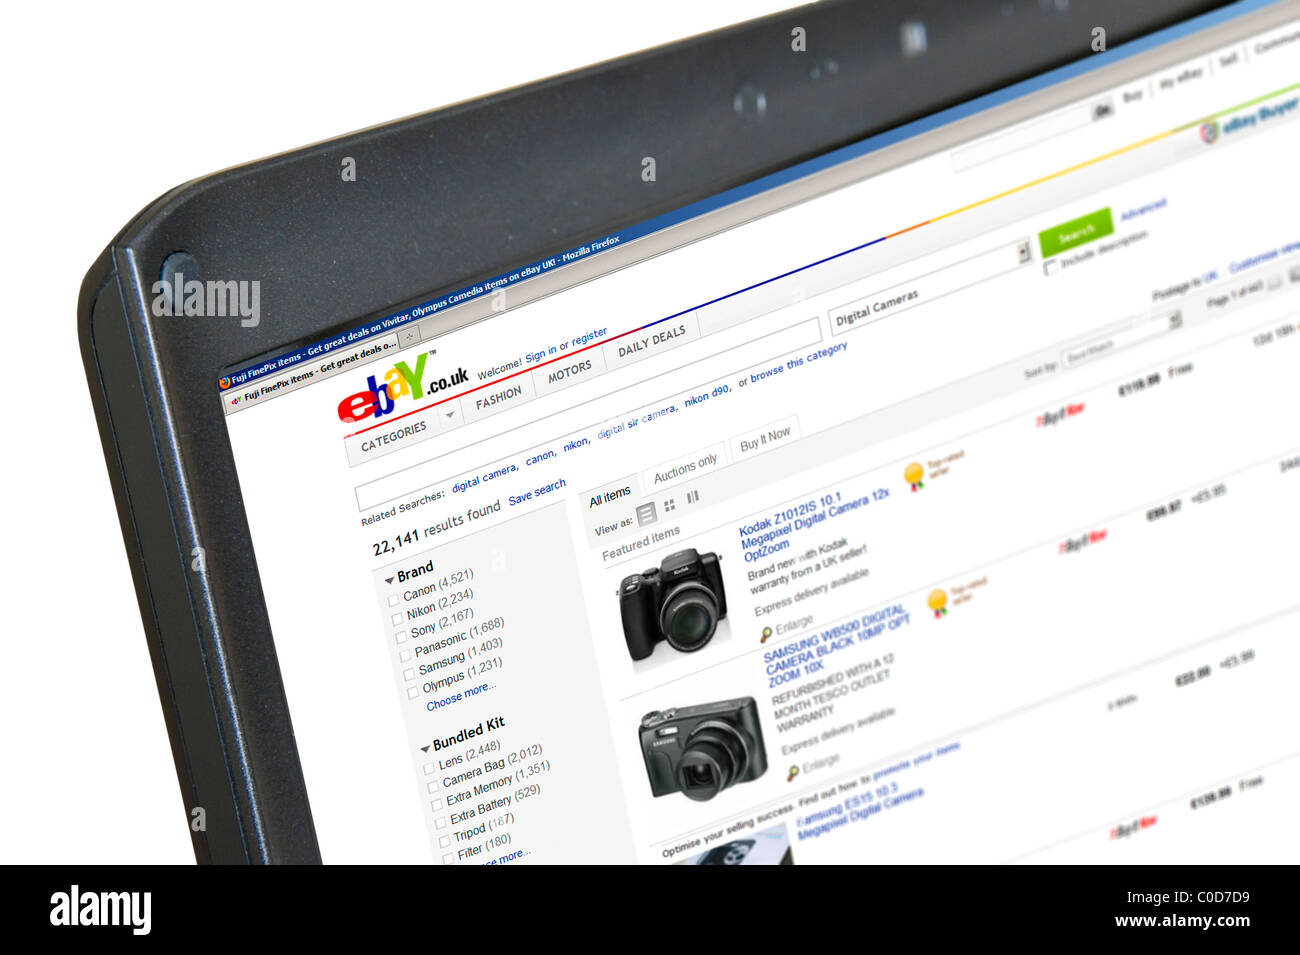 Browsing Digital Cameras For Sale On Ebay Co Uk On A Laptop Computer Stock Photo Alamy